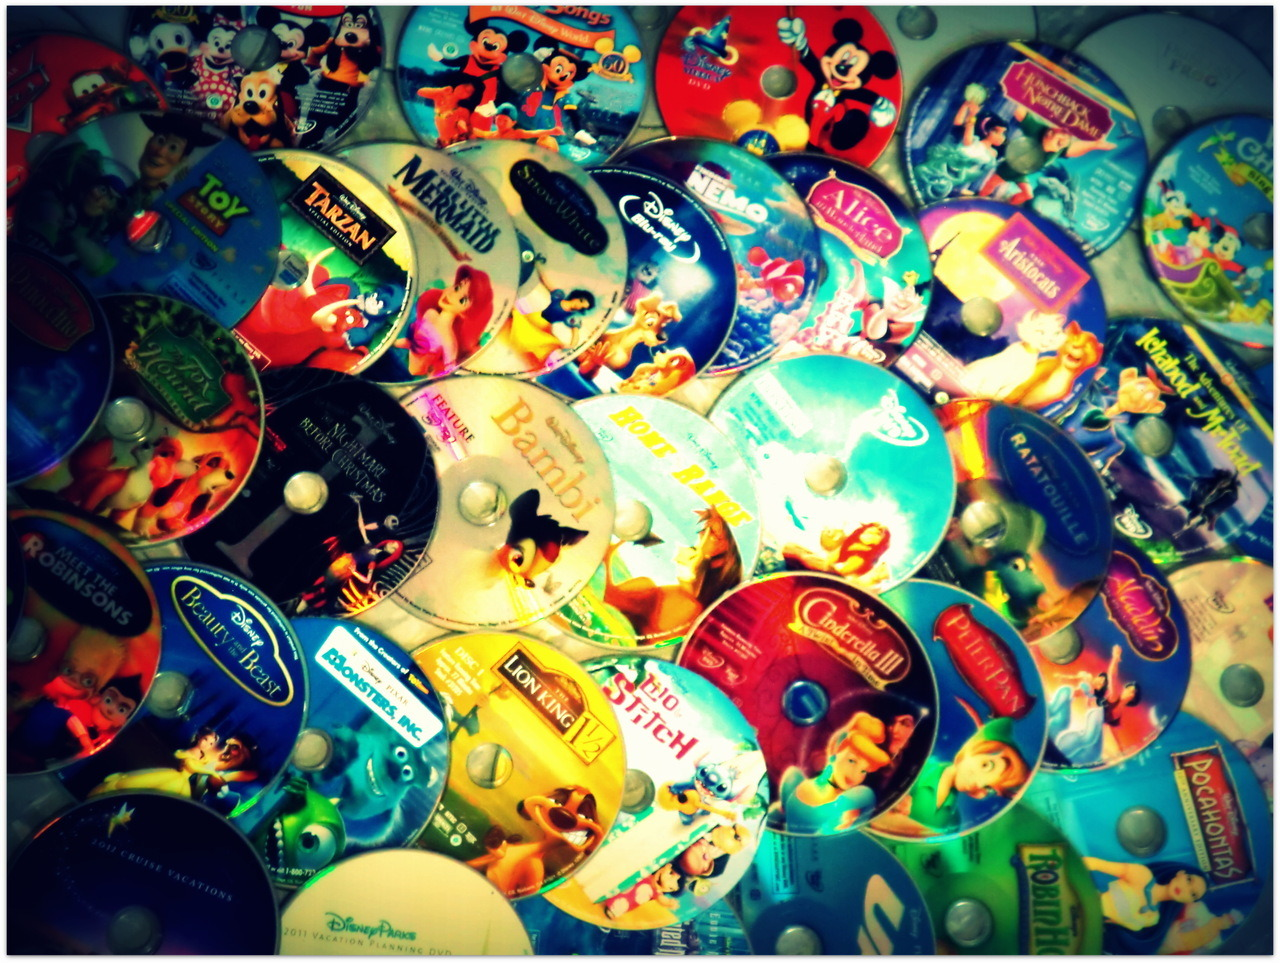 My Disney DVD Discs <3